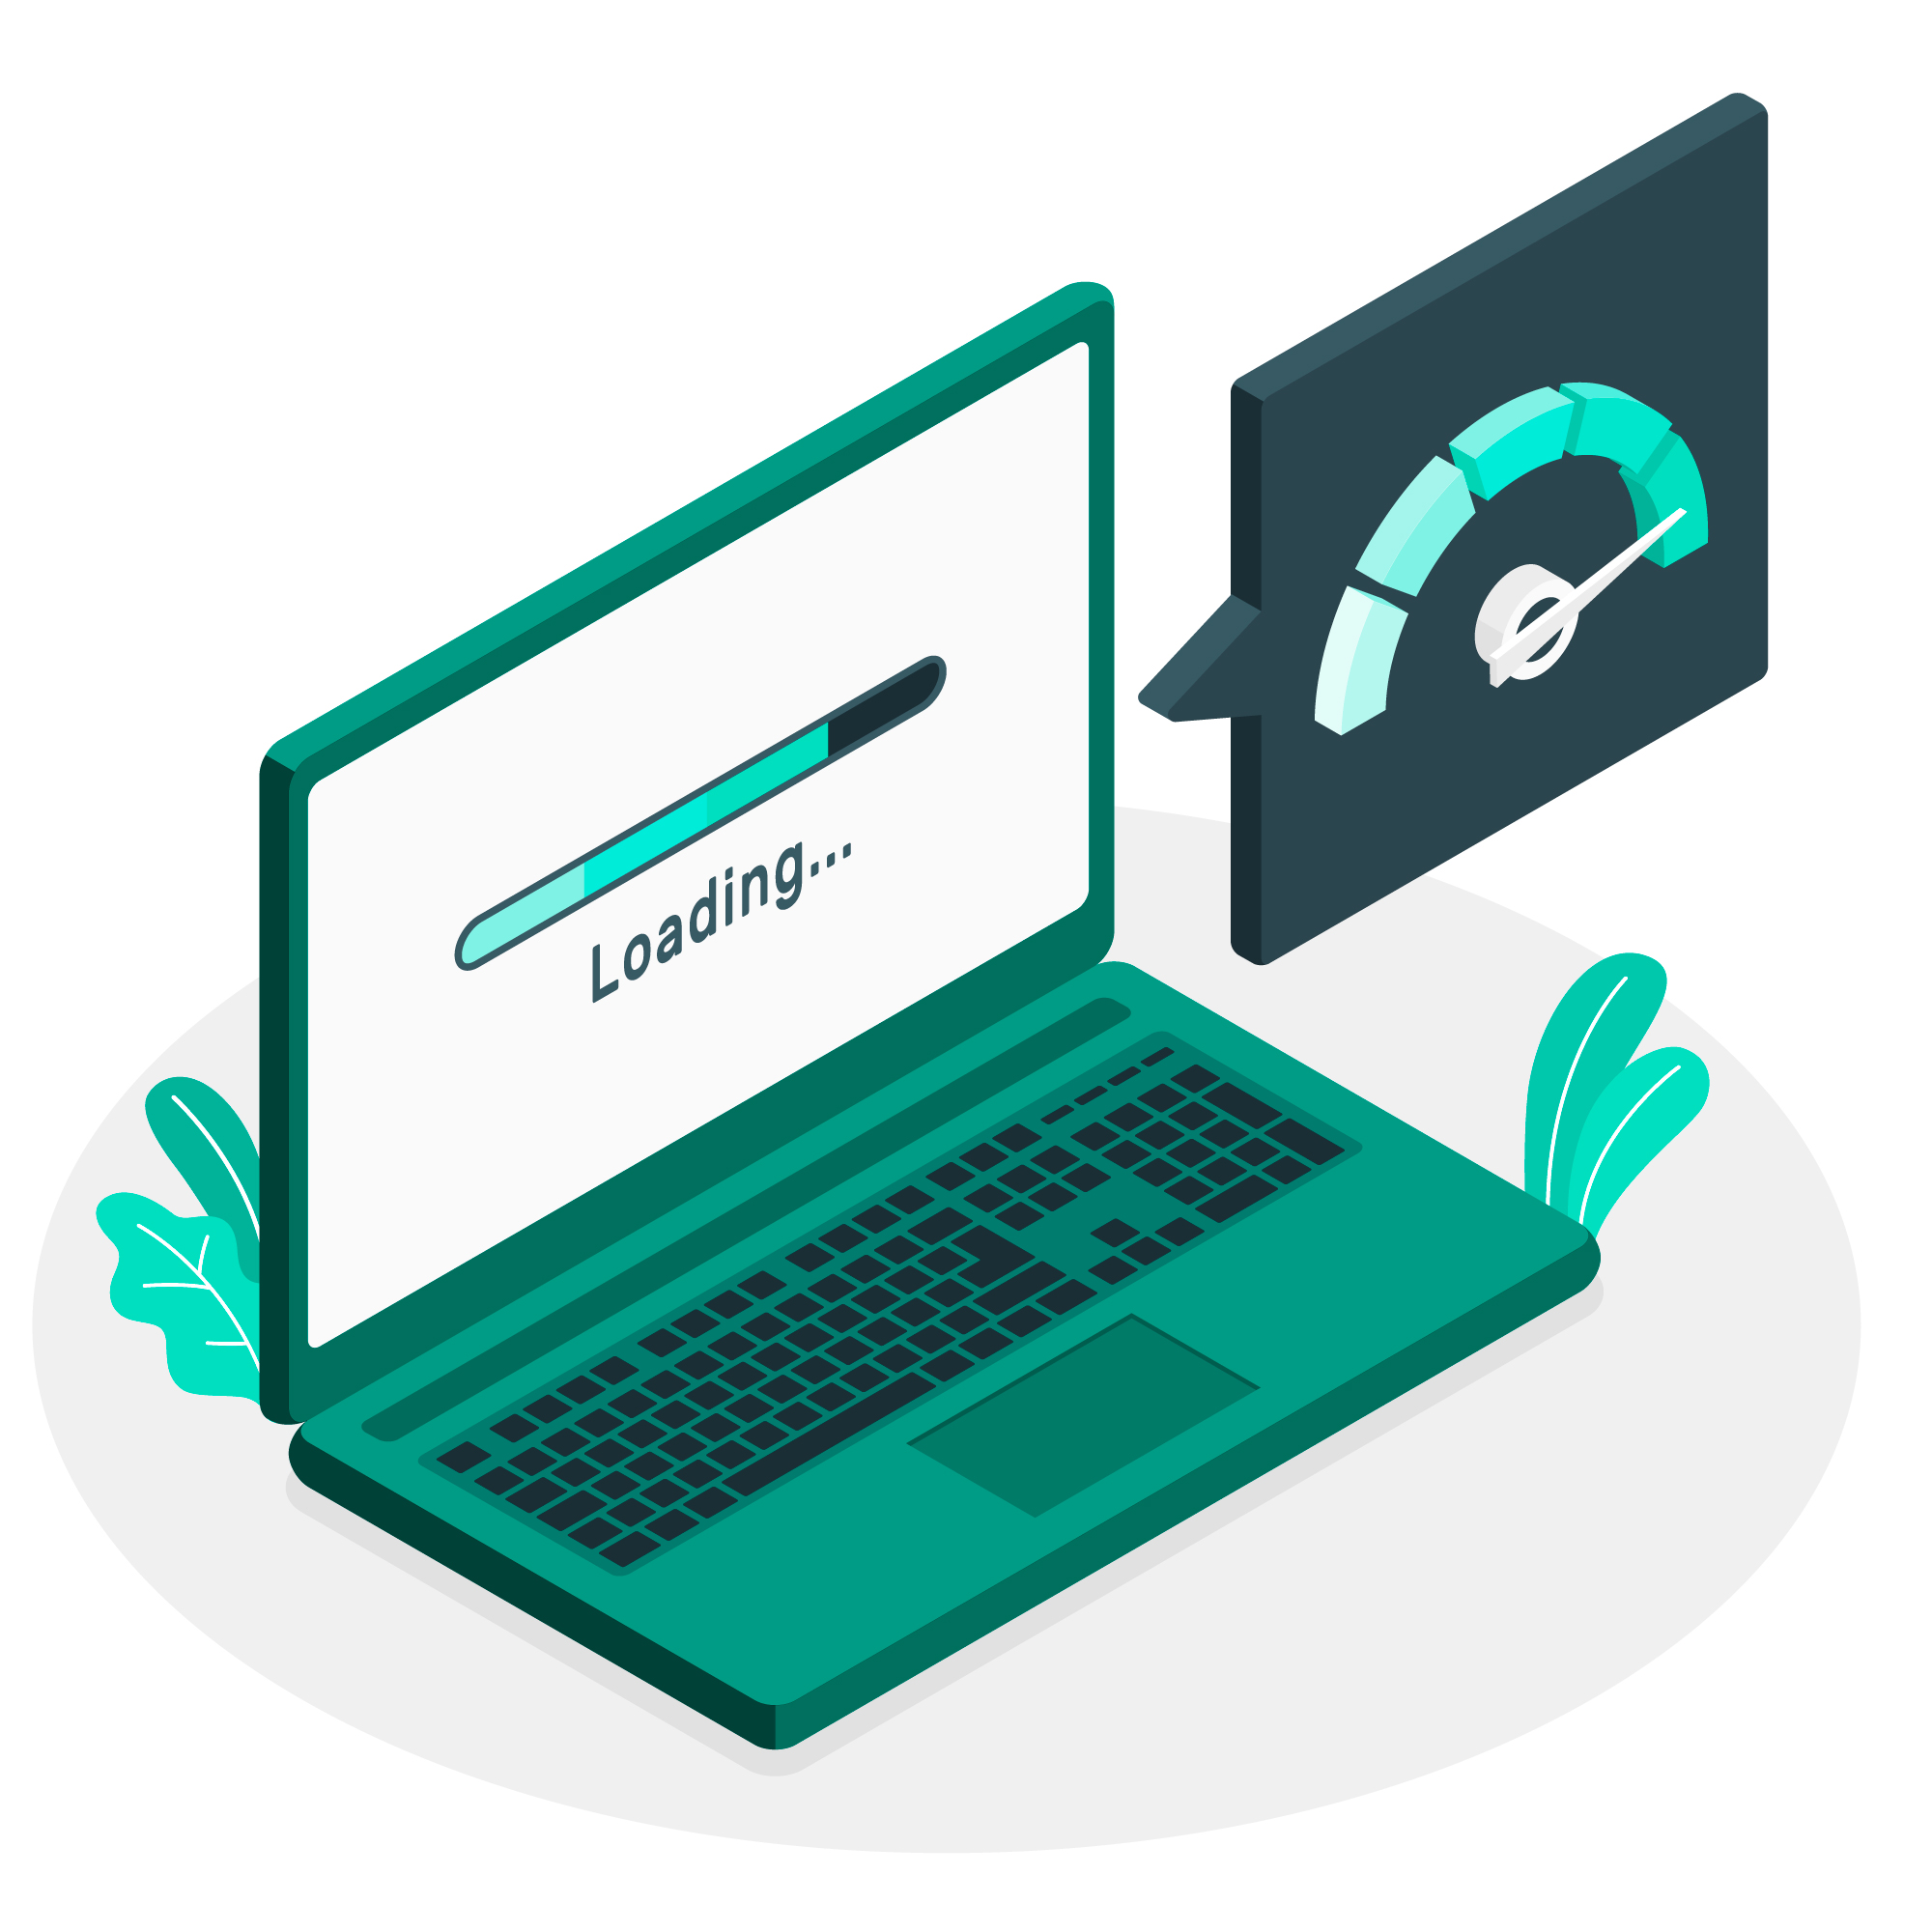 illustration of laptop with loading screen and speed meter to determine website ranking